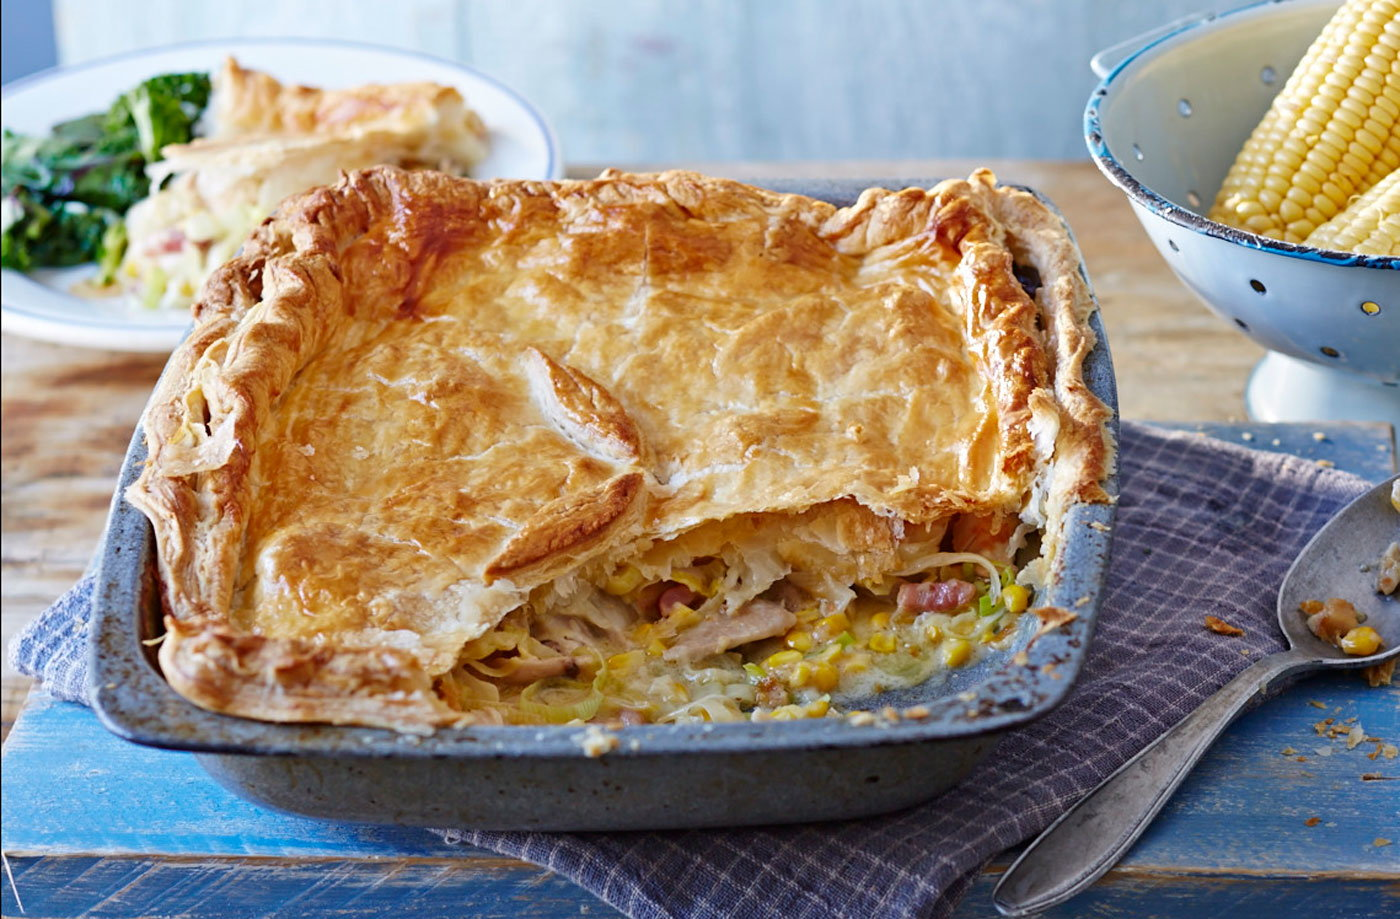 Chicken and sweetcorn pie recipe